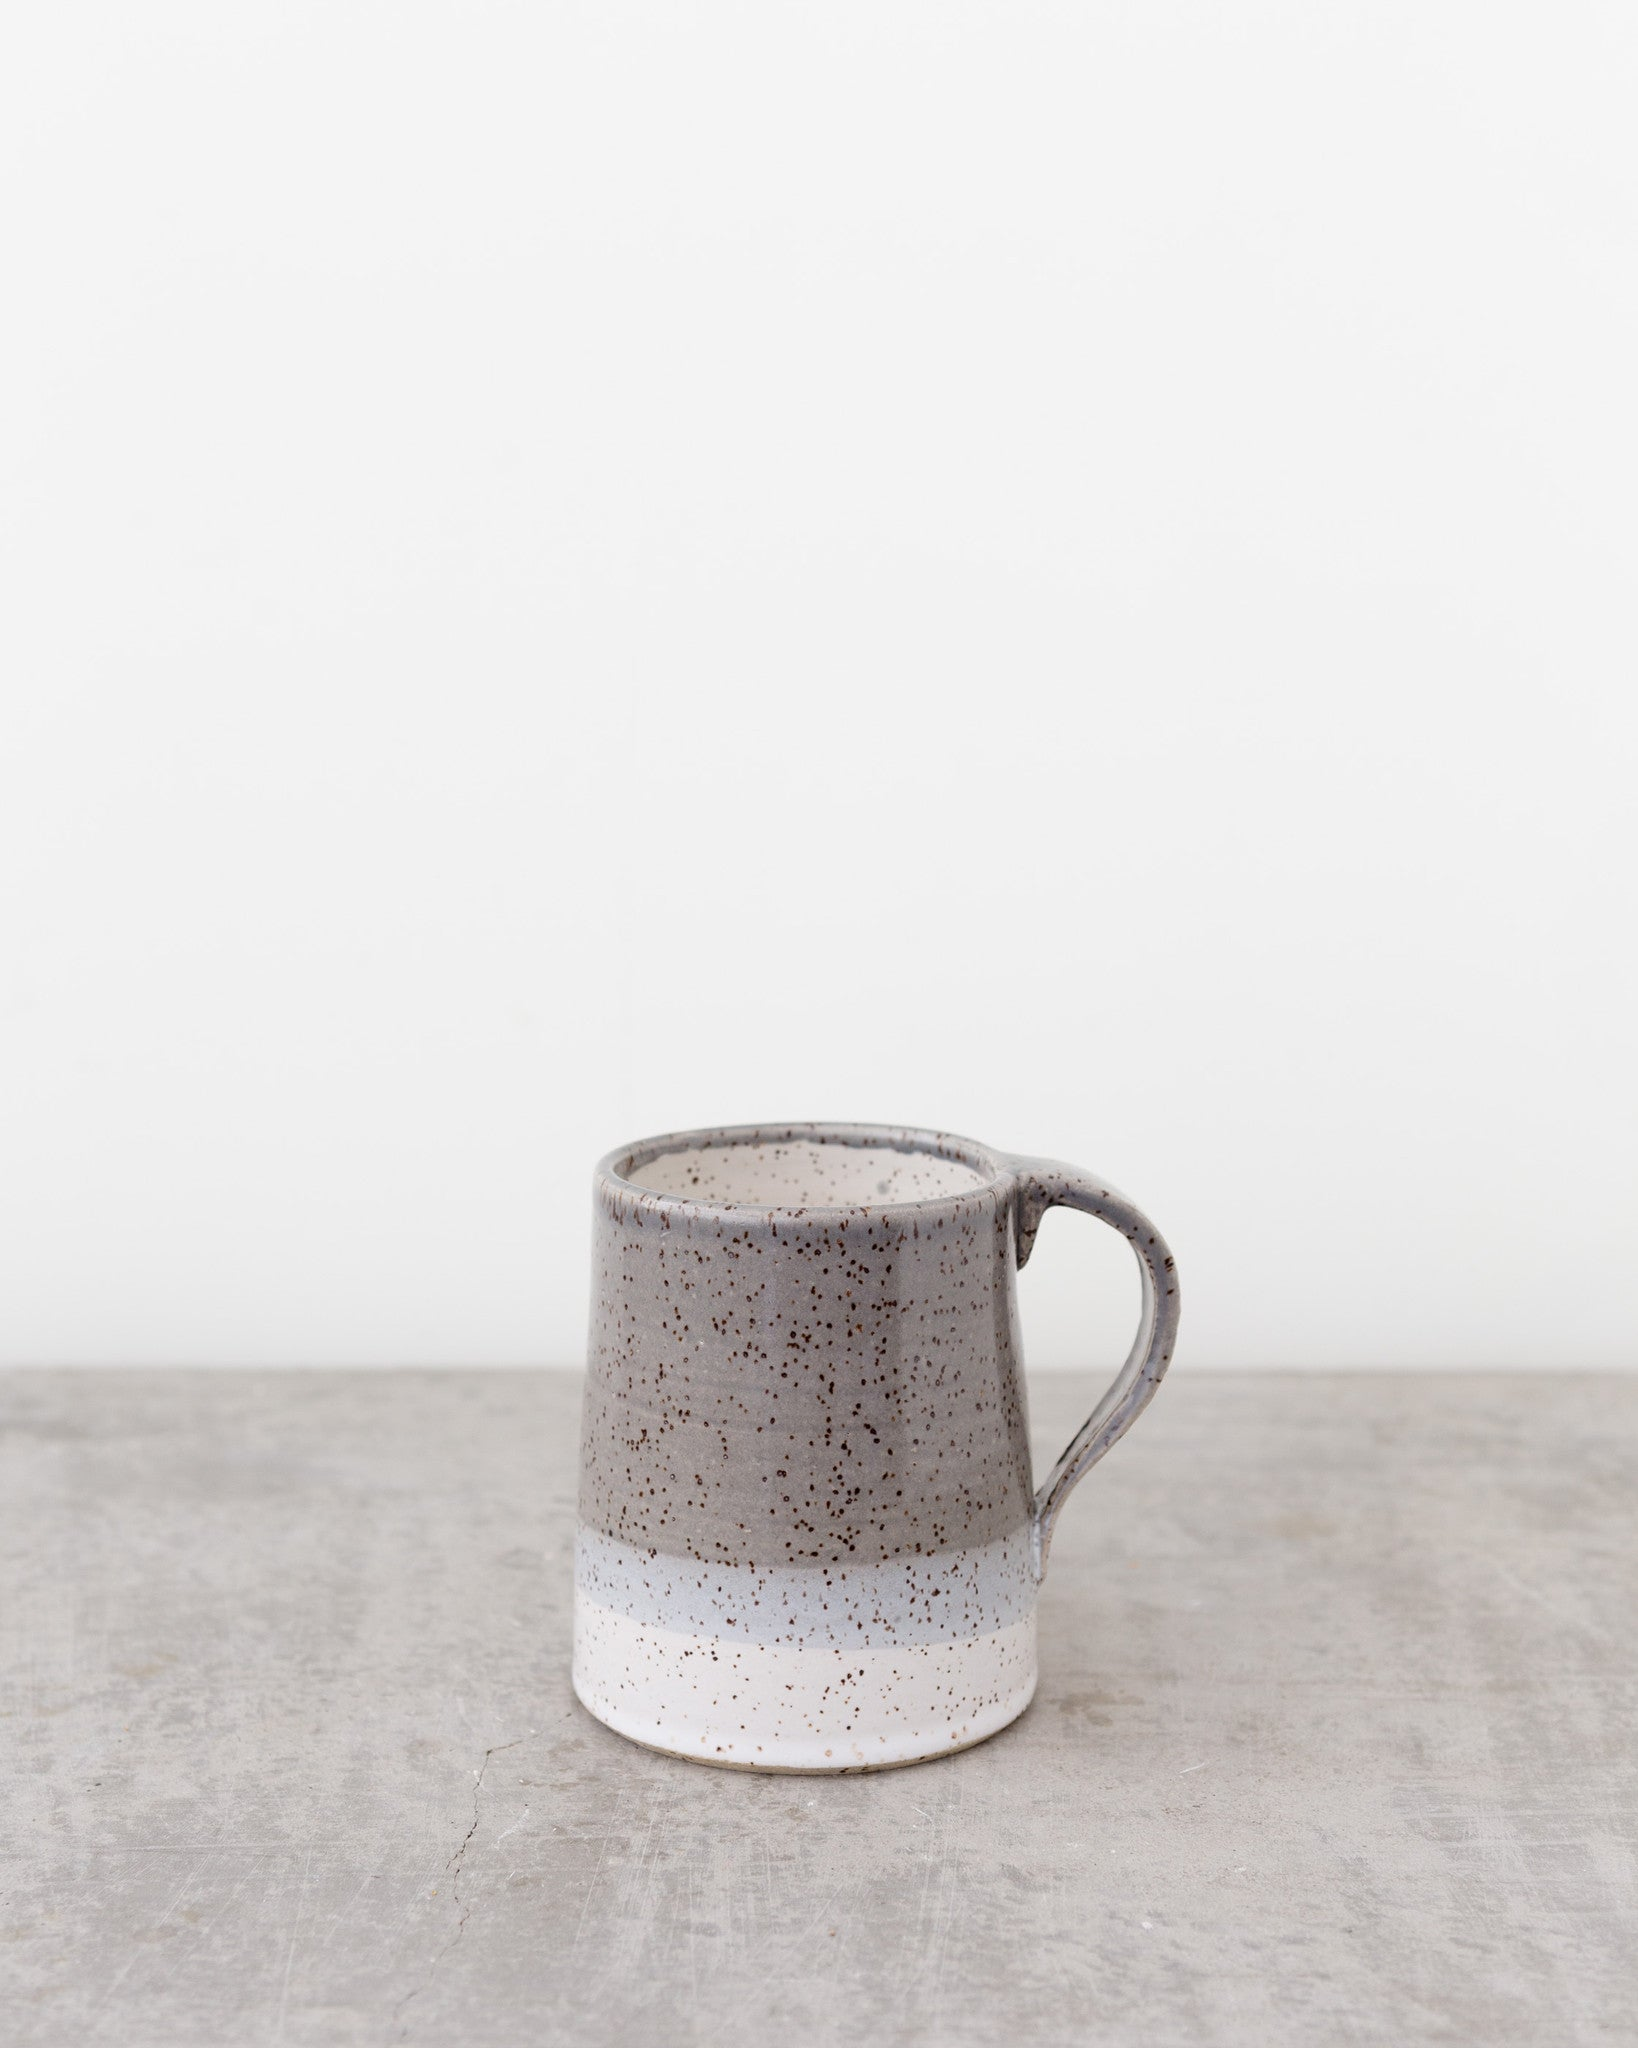 Dahlhaus Dipped Speckled Mug in Grey